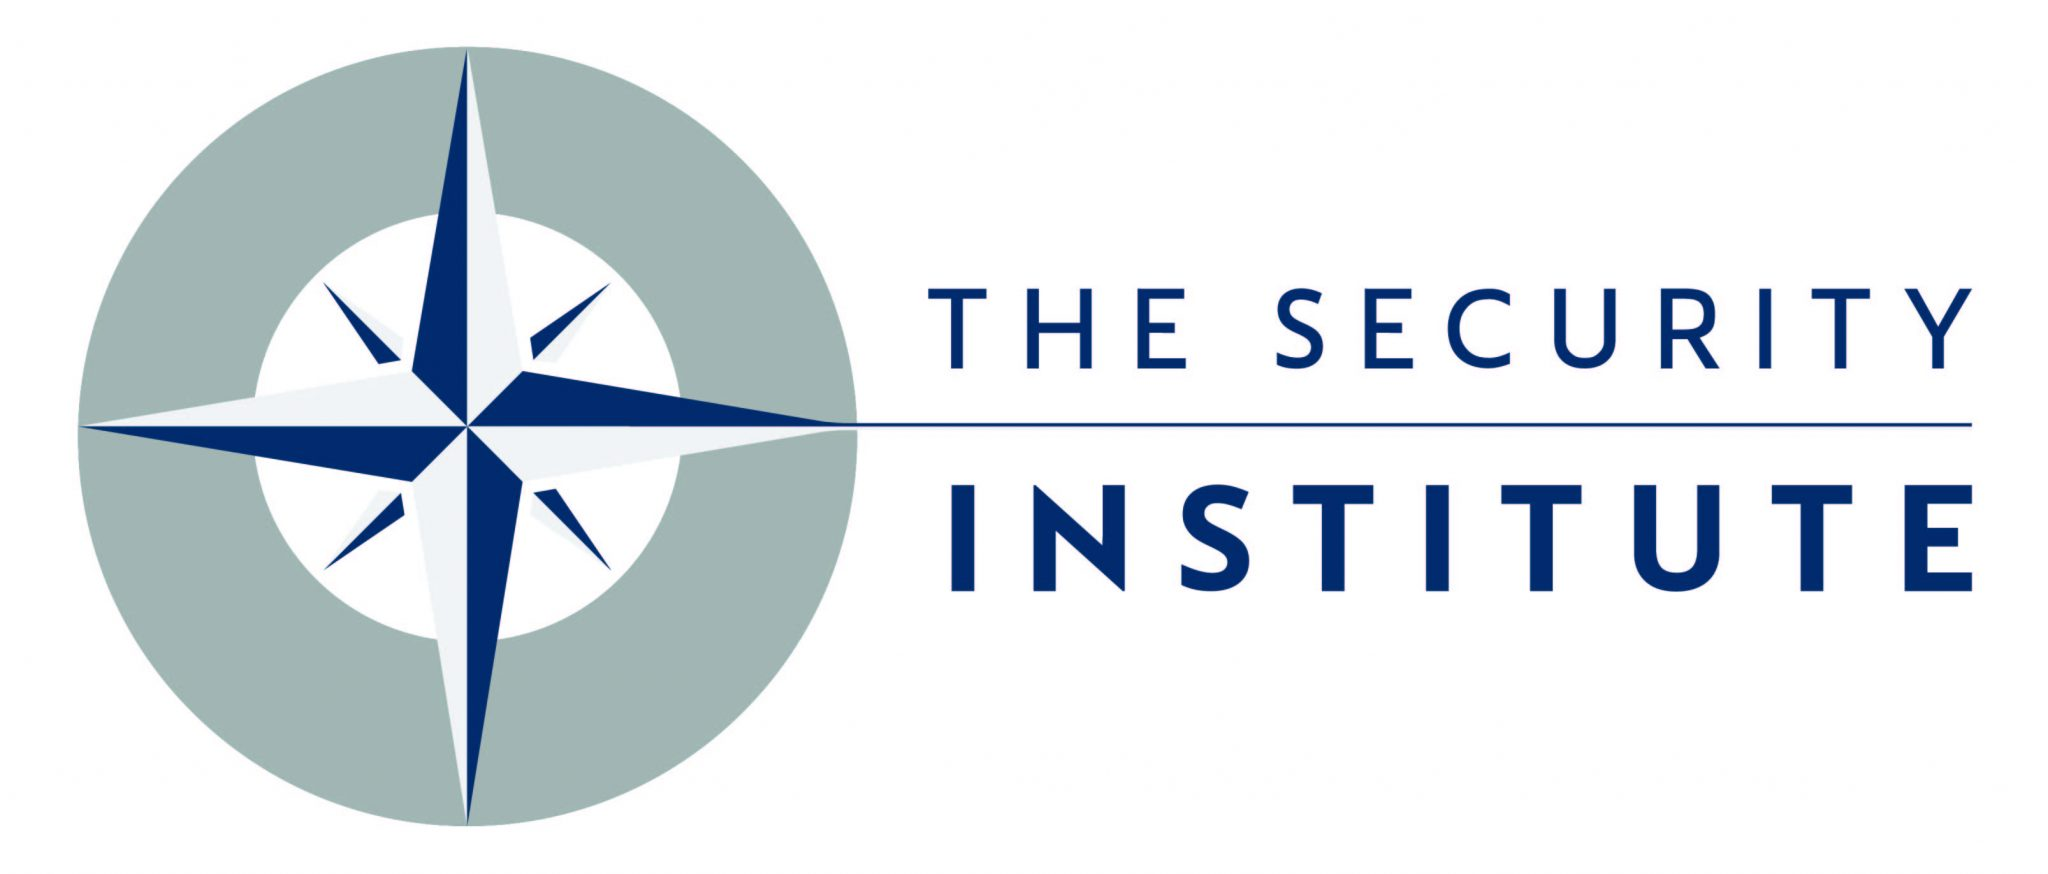 Security Institute image